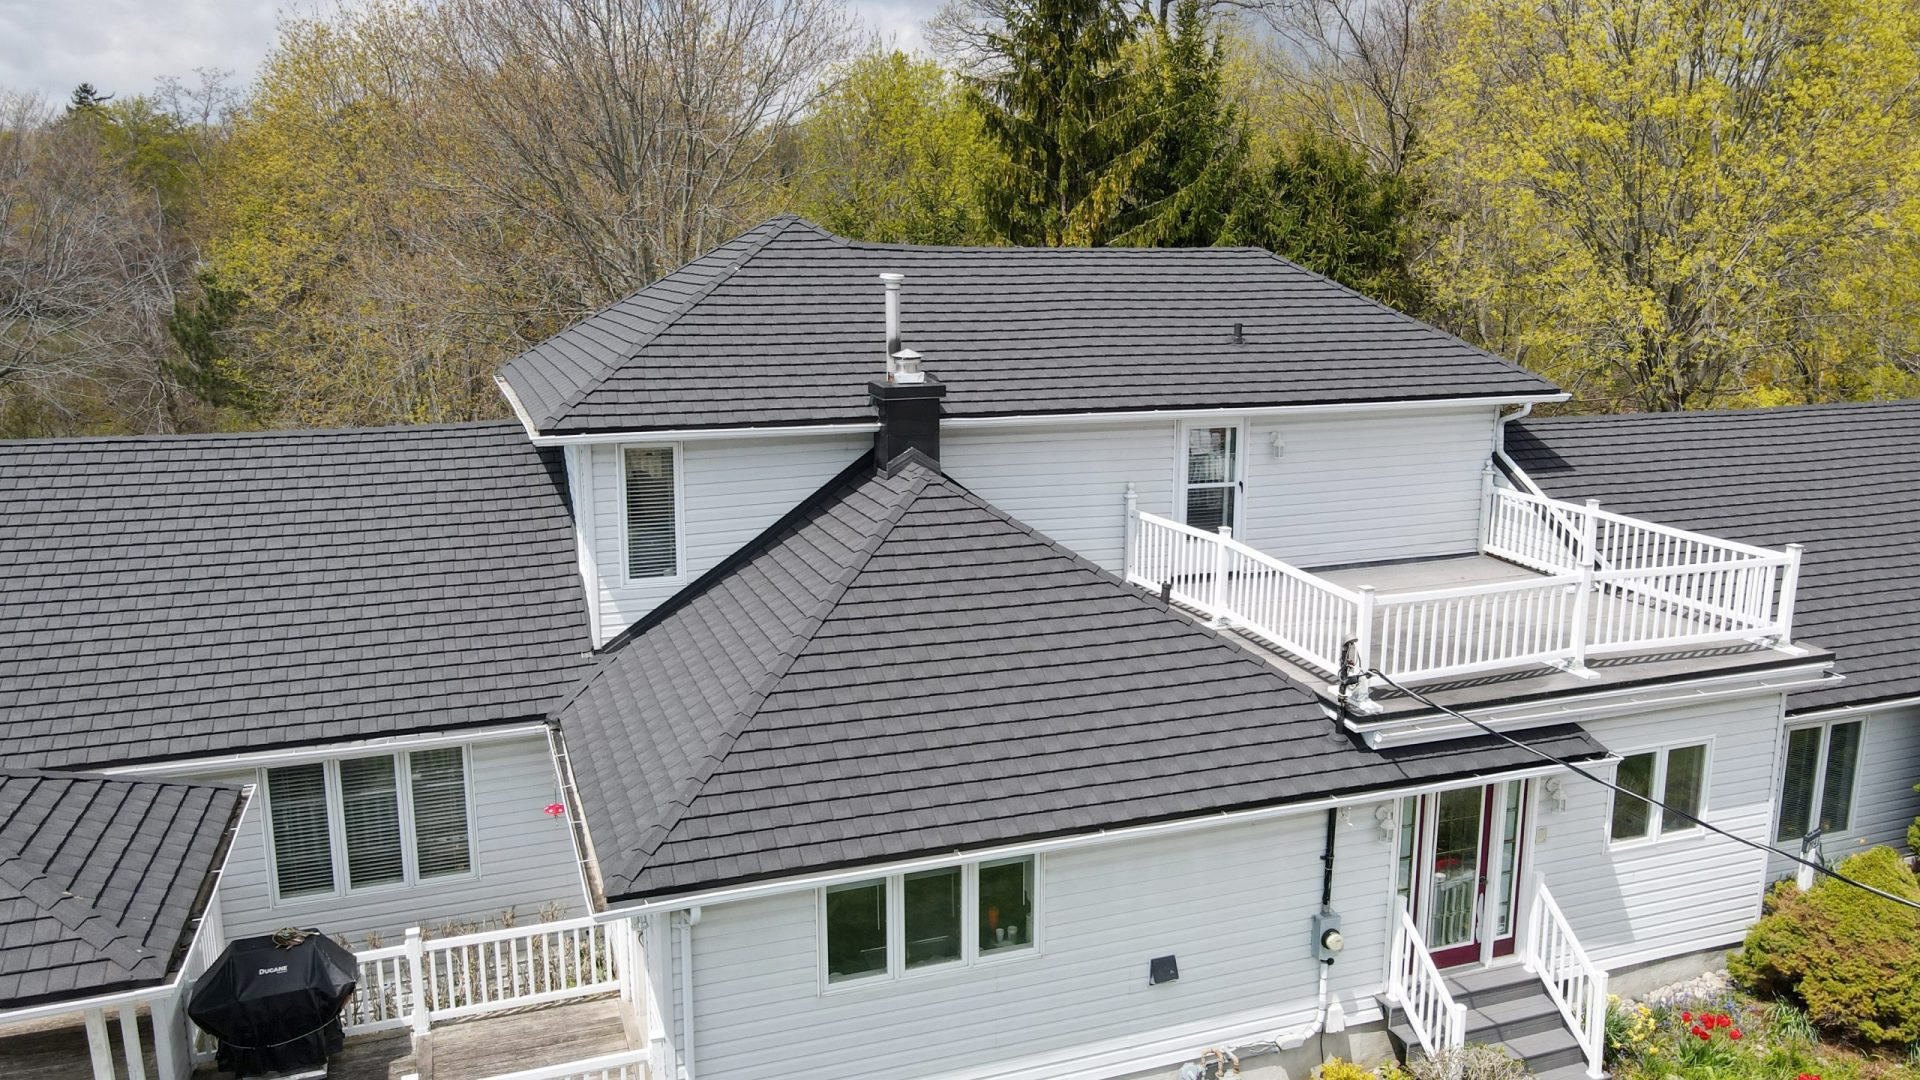 Grey metal shingles from metal roof outlet on a white home with trees and shrubs surrounding